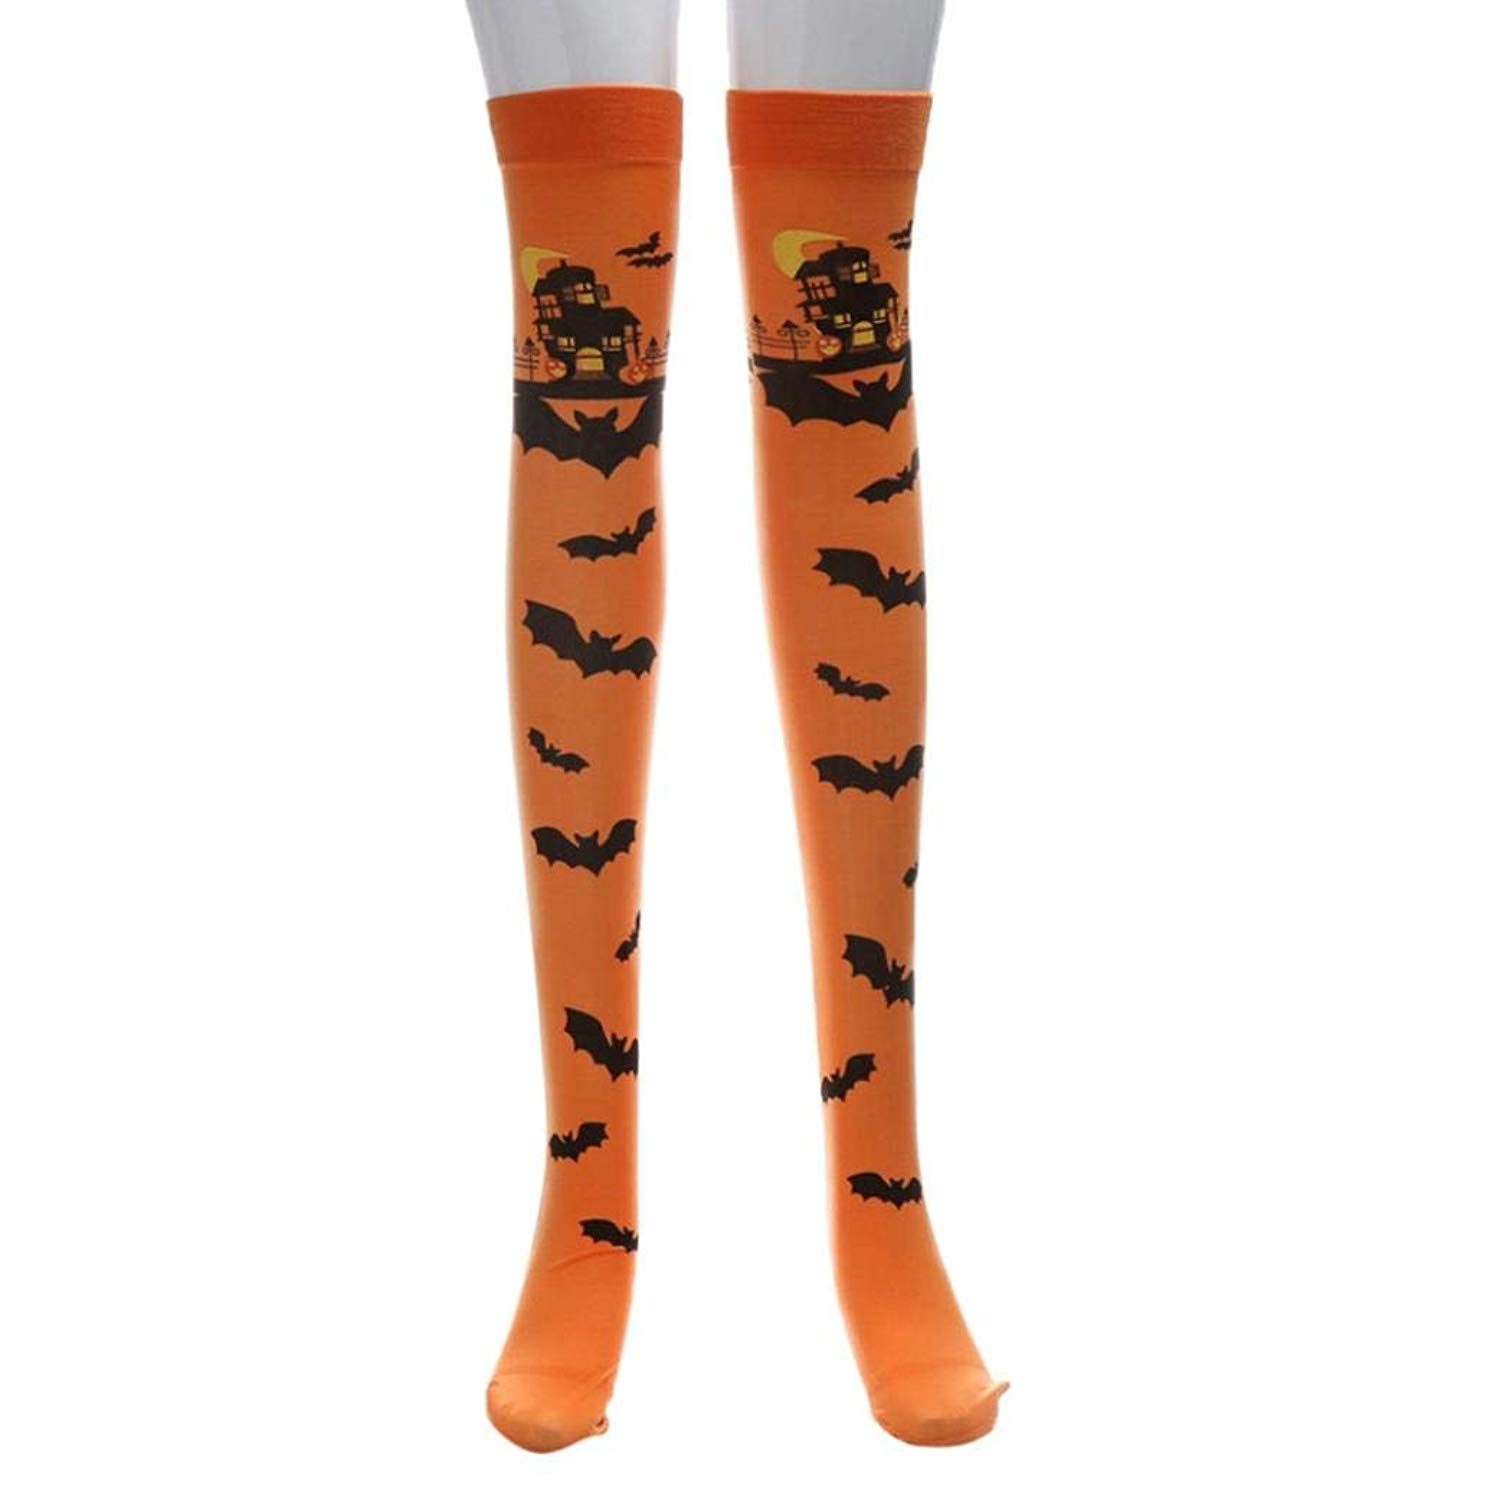 cfd269ca63f Get Quotations · JPOQW-winter Halloween Socks Stockings Print Long Tube Knee  Socks Fancy Party Funny Dress up